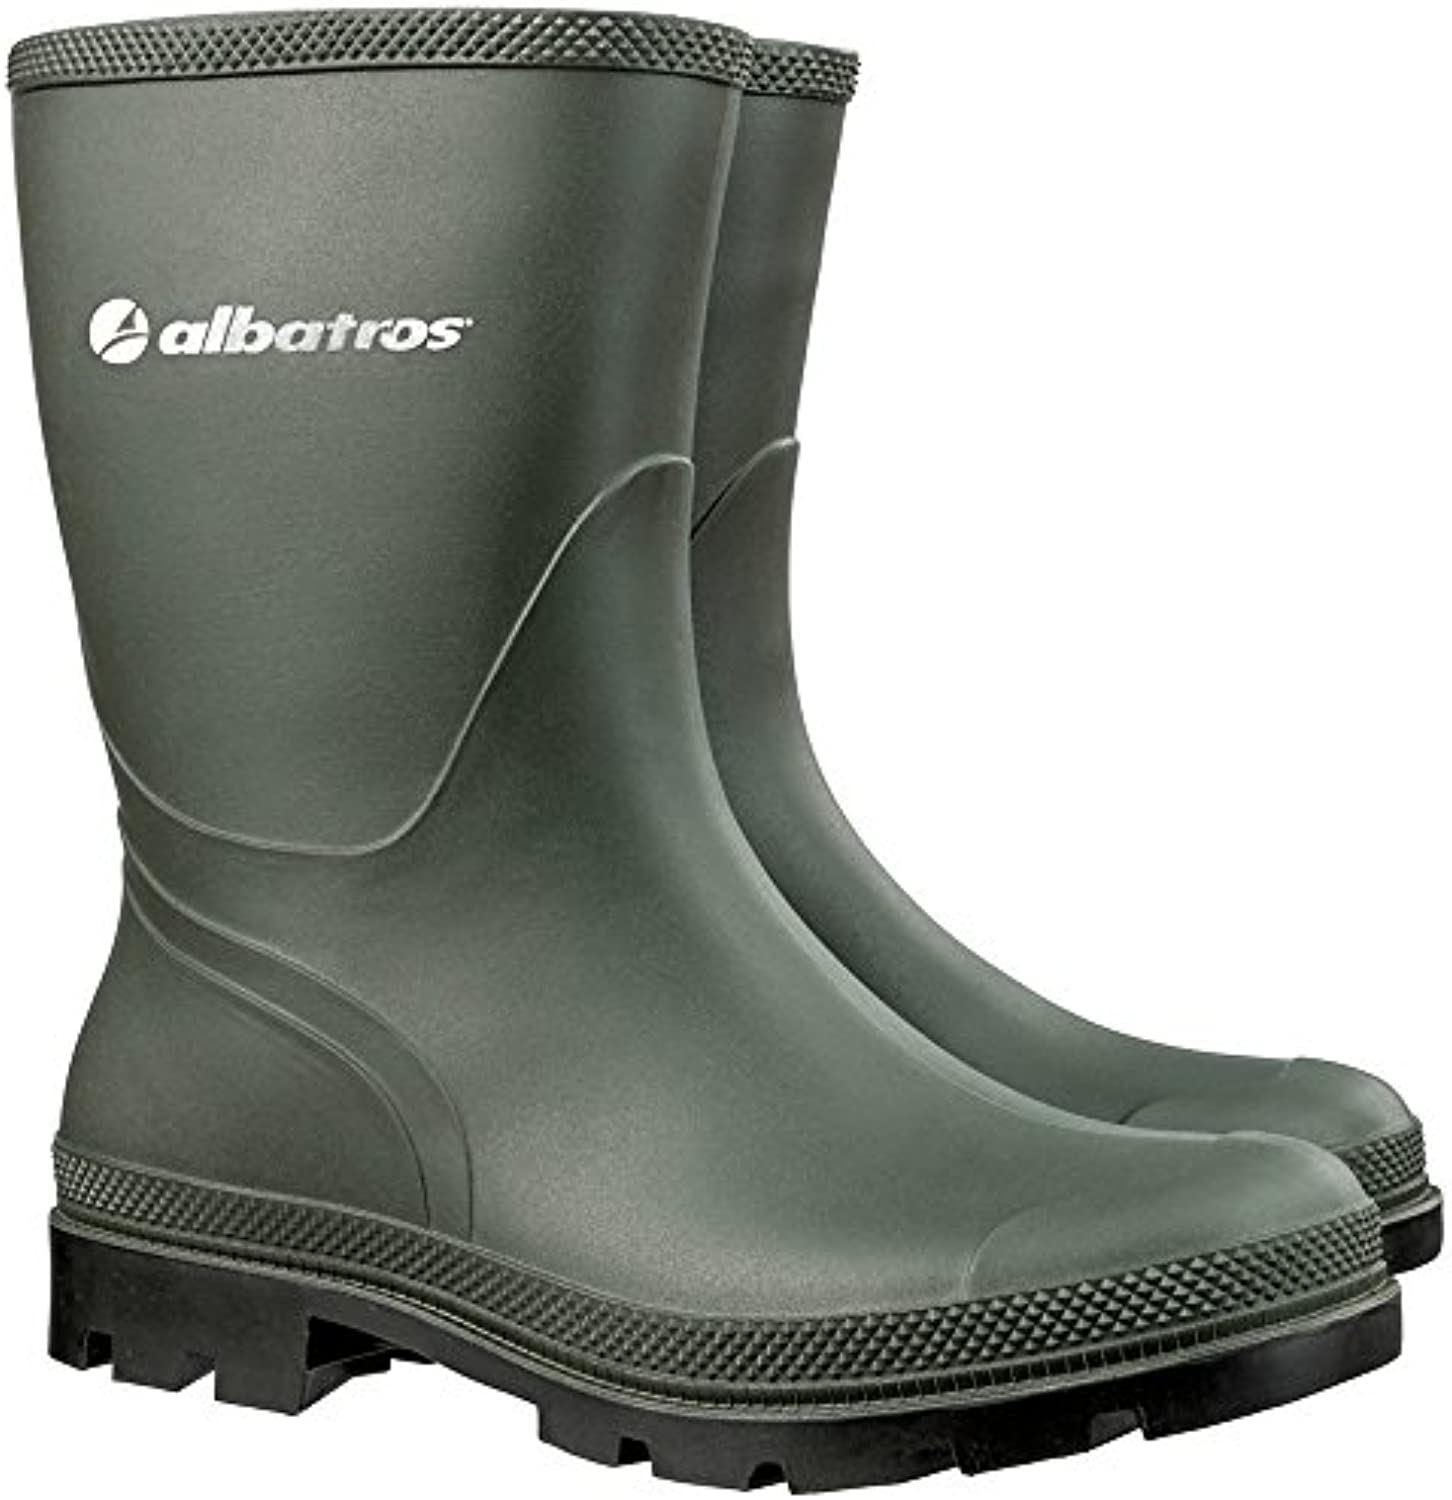 Albatros 593080 – 600 – 37 The Rancher botas de PVC, color verde, talla 37